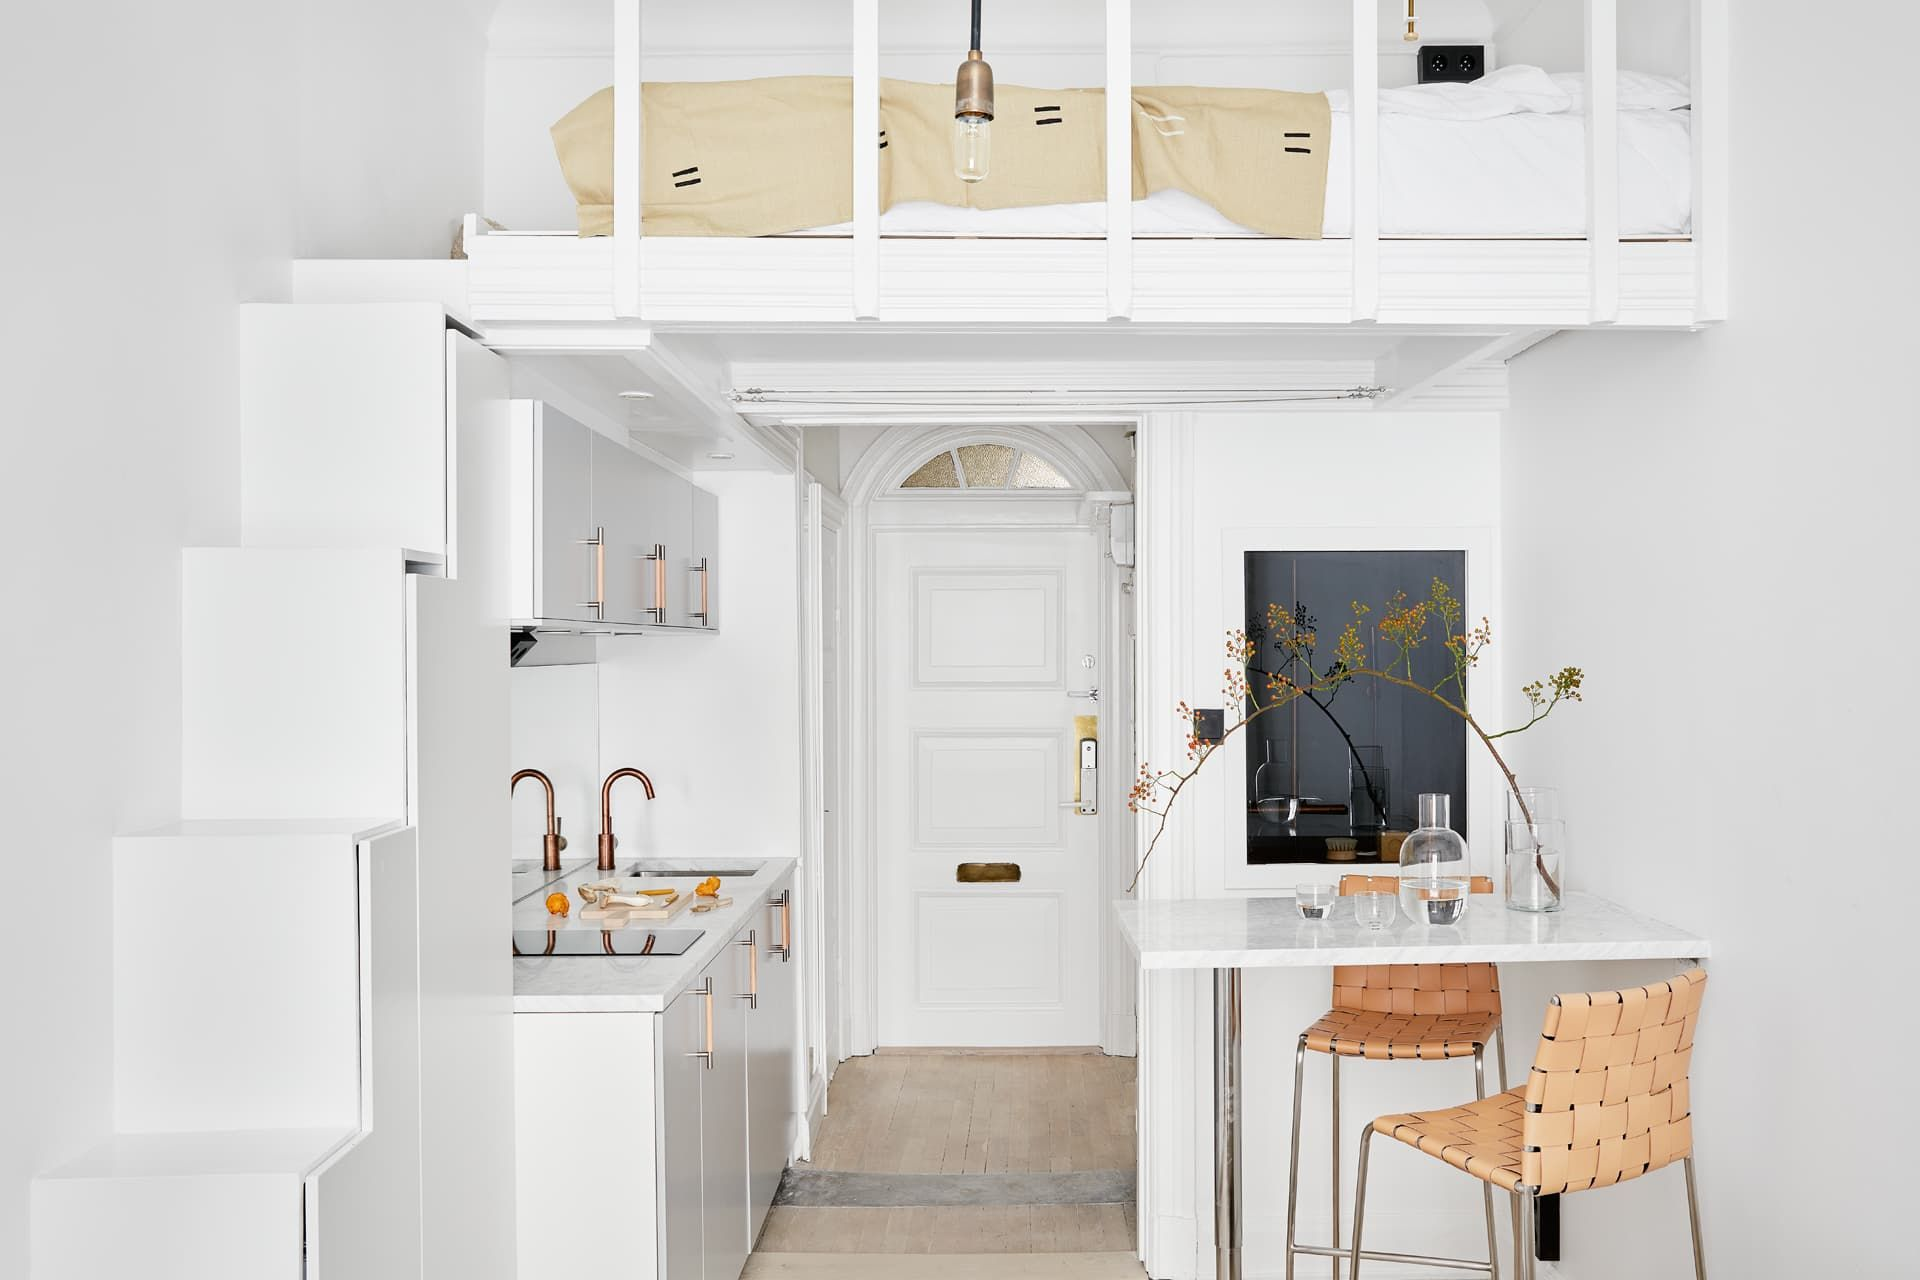 This Tiny Swedish Studio is Everything You Could Want in an Apartment